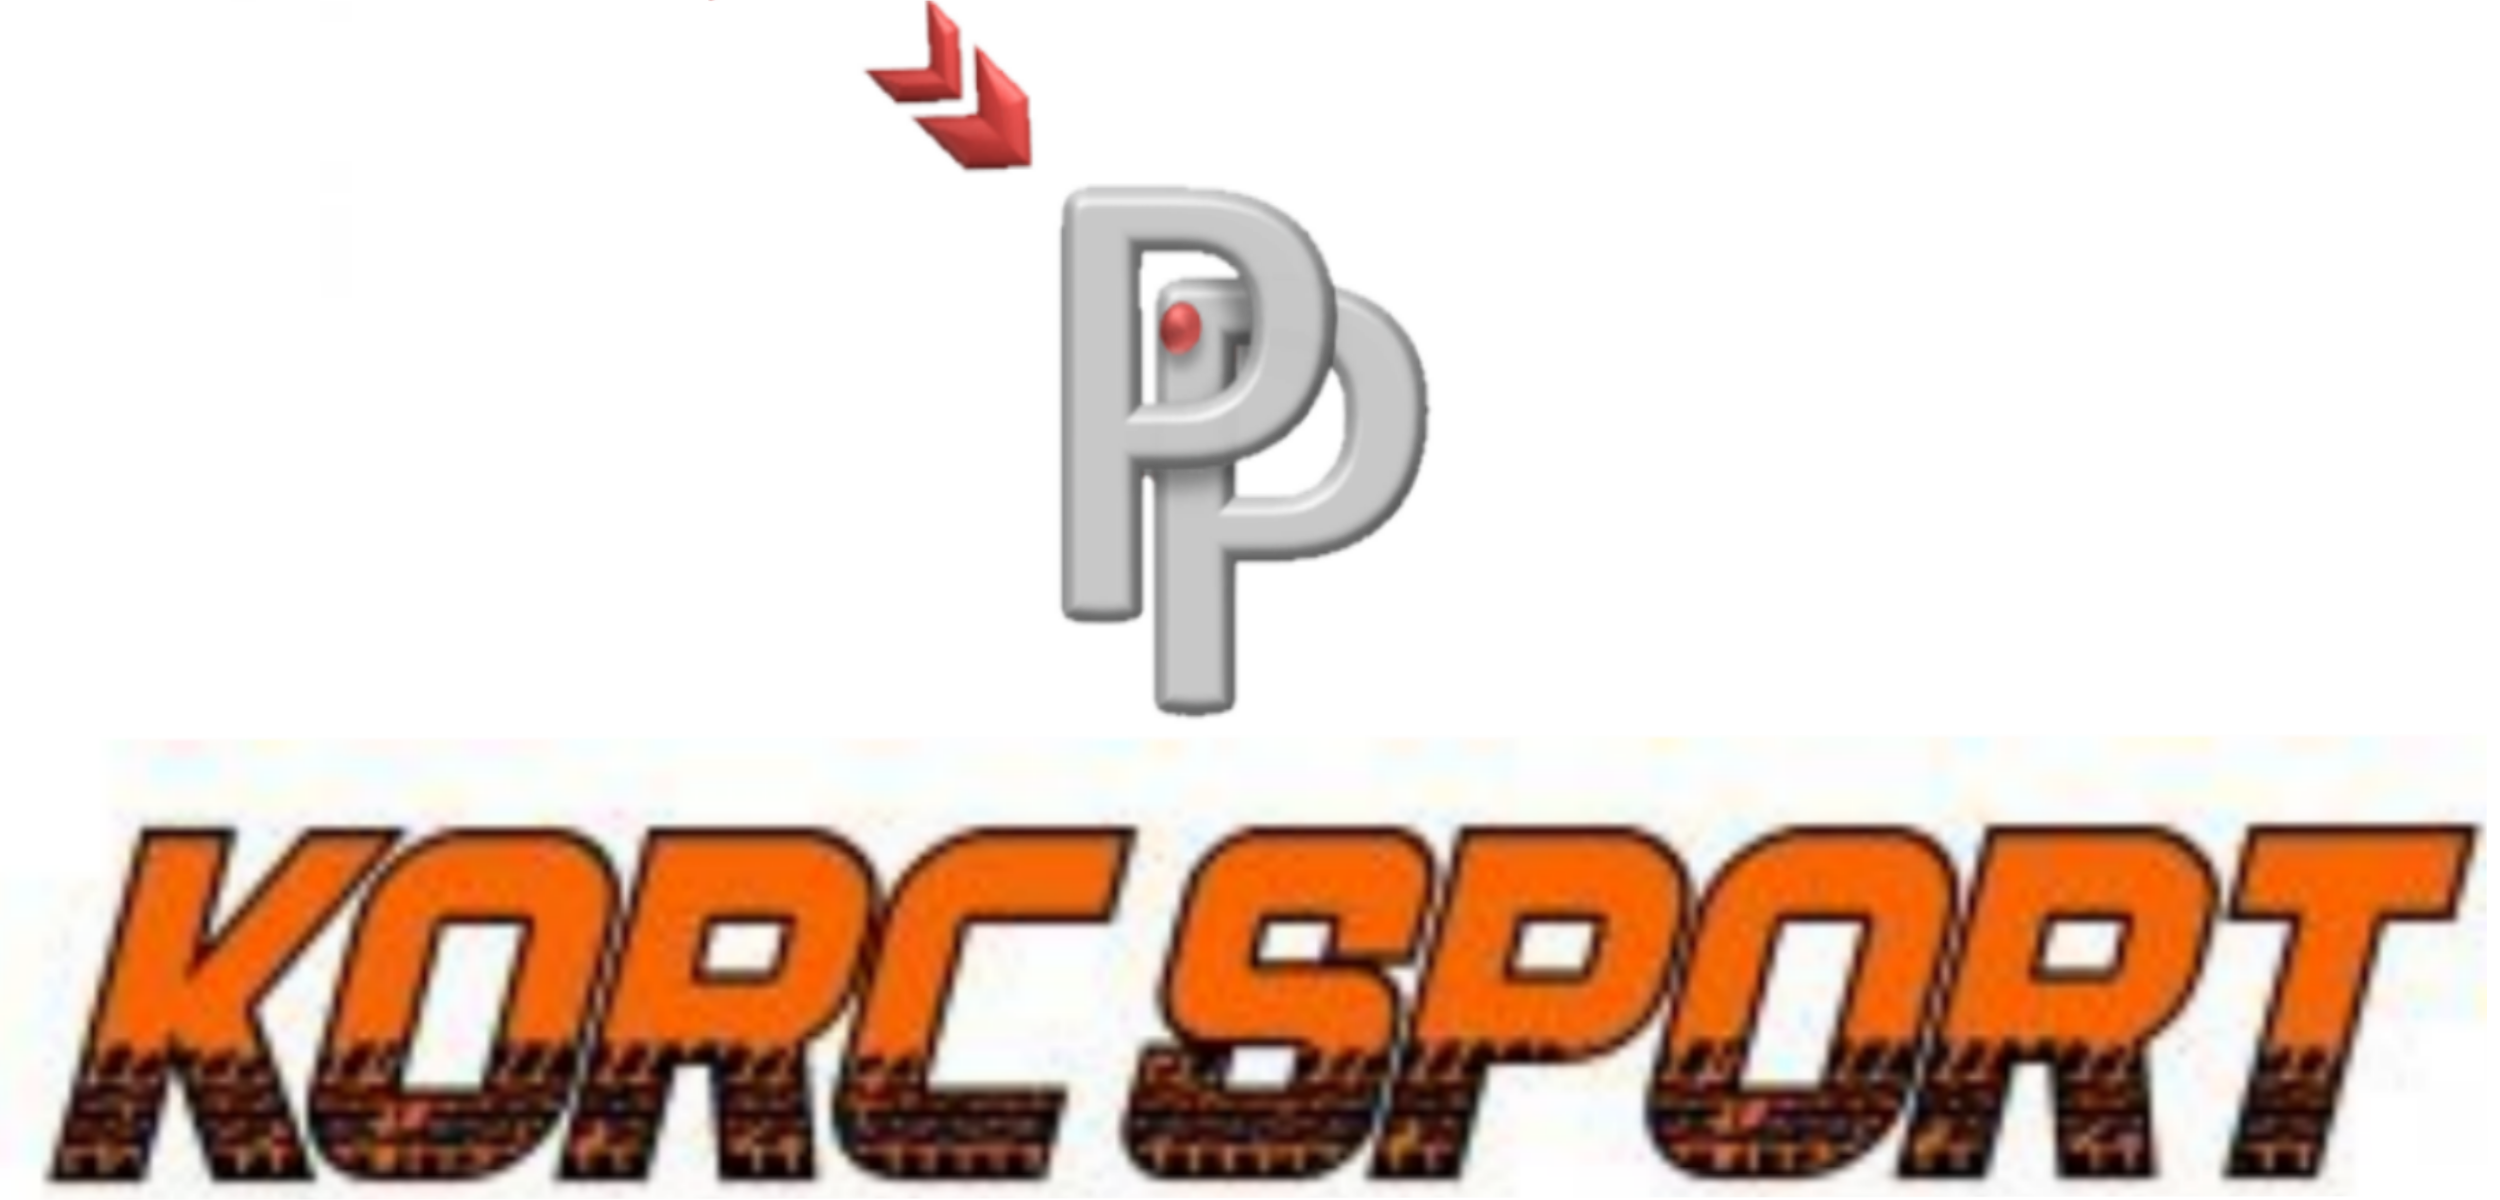 Precise Protect Endorsed By KORC Sport